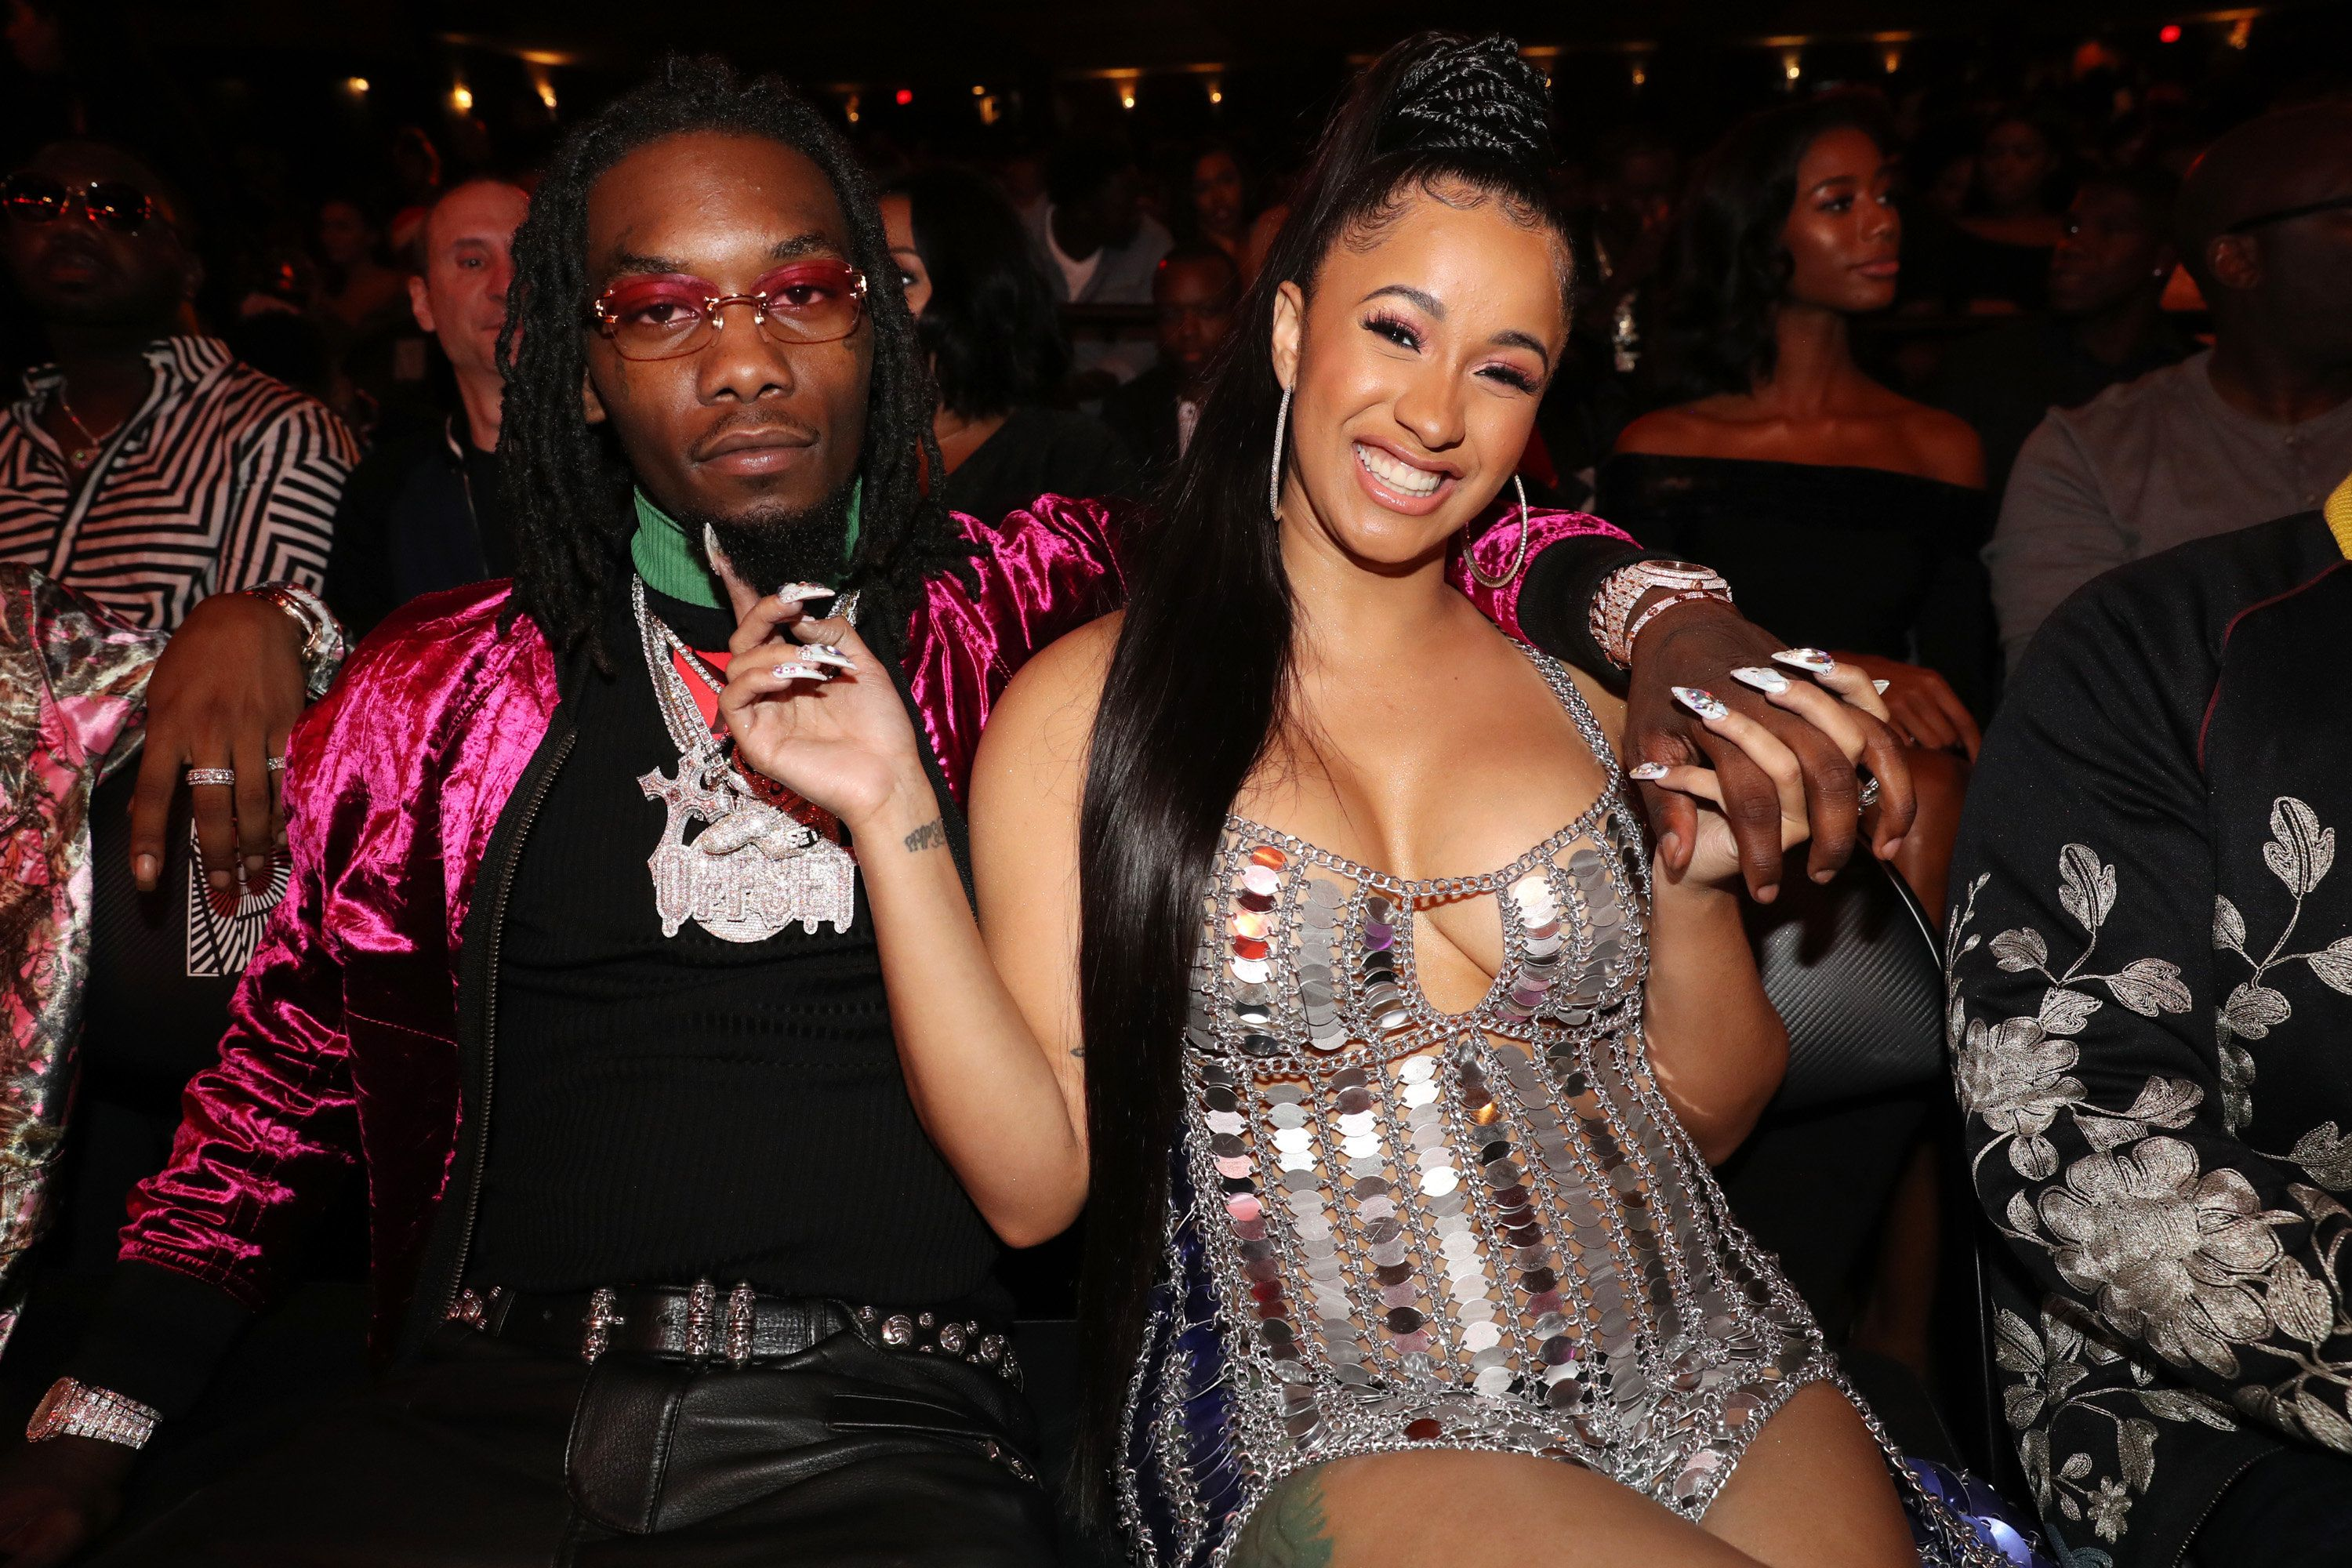 Offset and Cardi B attend the 2017 BET Hip Hop Awards on Oct. 6, 2017.